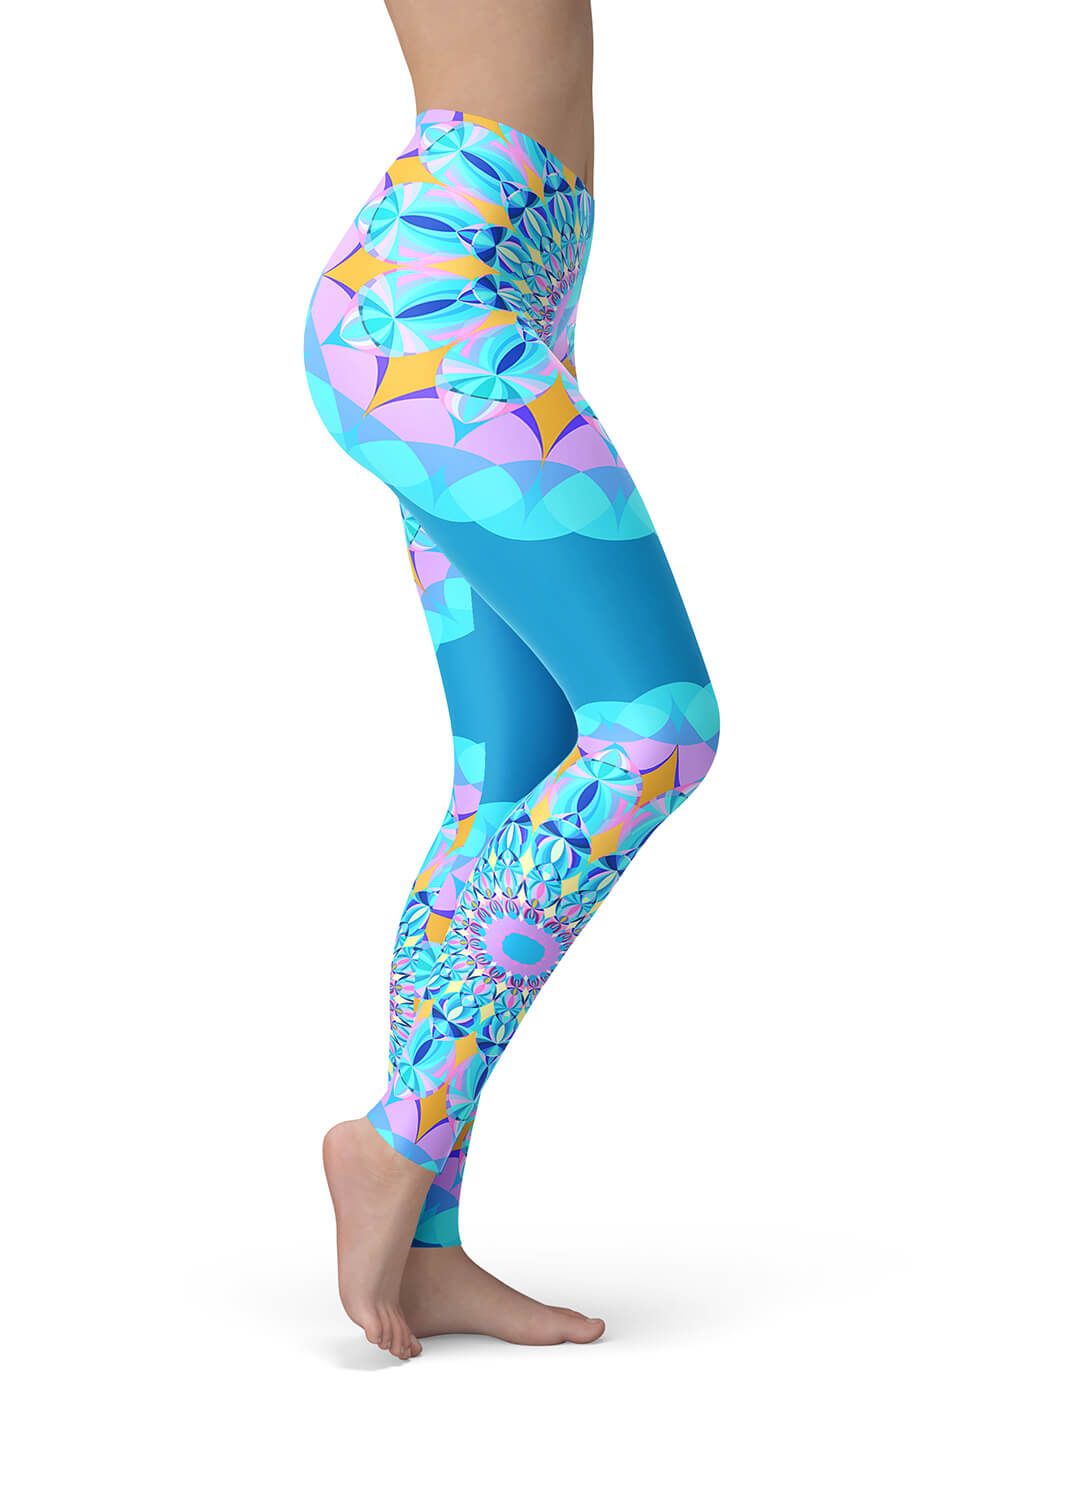 Blue Mandala Leggings - Blue Atlantis Mandala